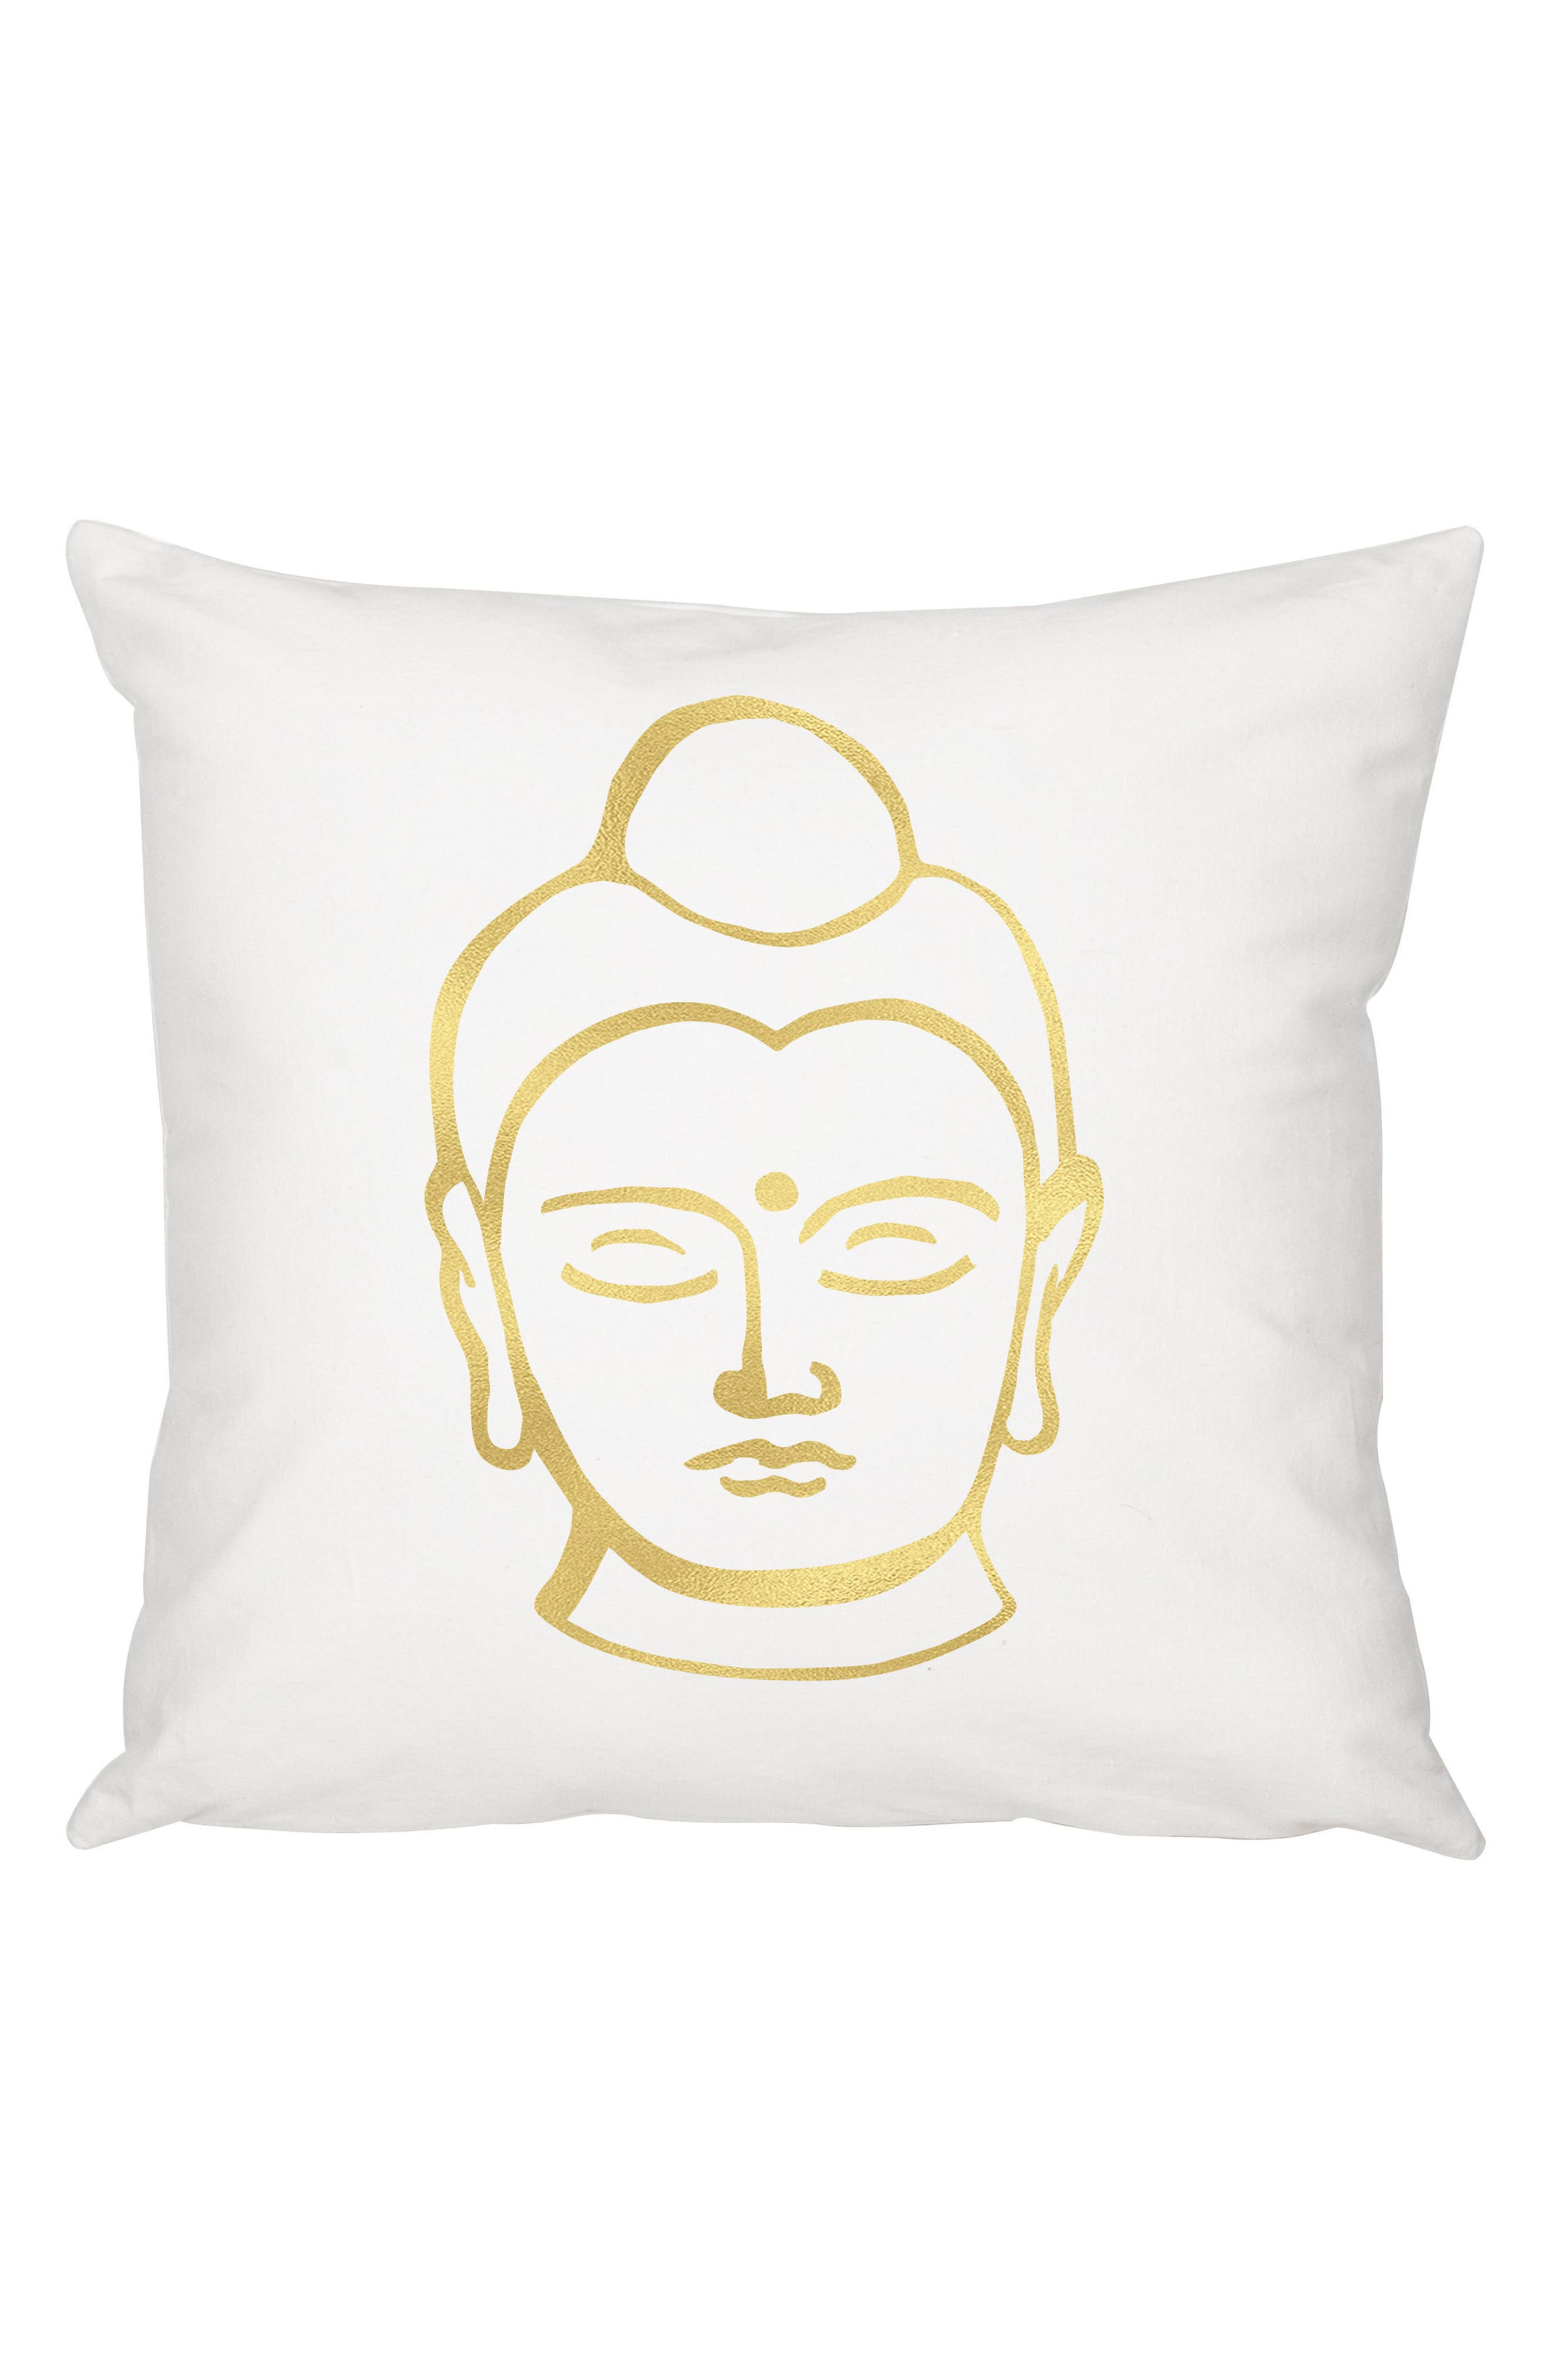 Buddha Accent Pillow,                             Main thumbnail 1, color,                             Gold